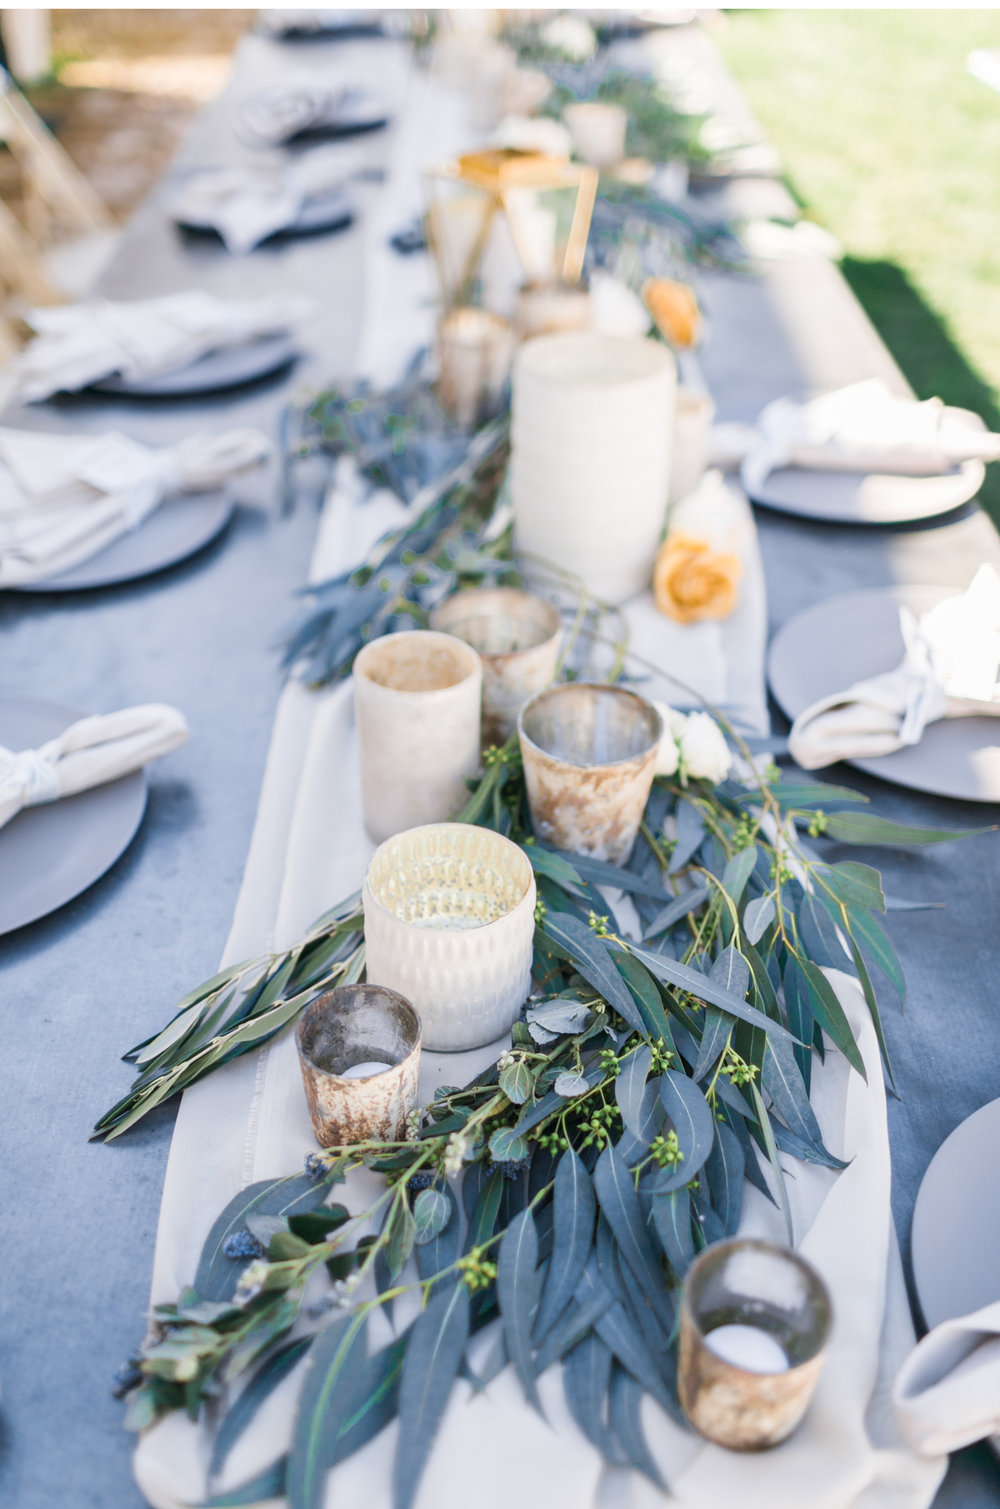 Triunfo-Creek-Malibu-Wedding-Natalie-Schutt-Photography-Couture-Events-Style-Me-Pretty_12.jpg